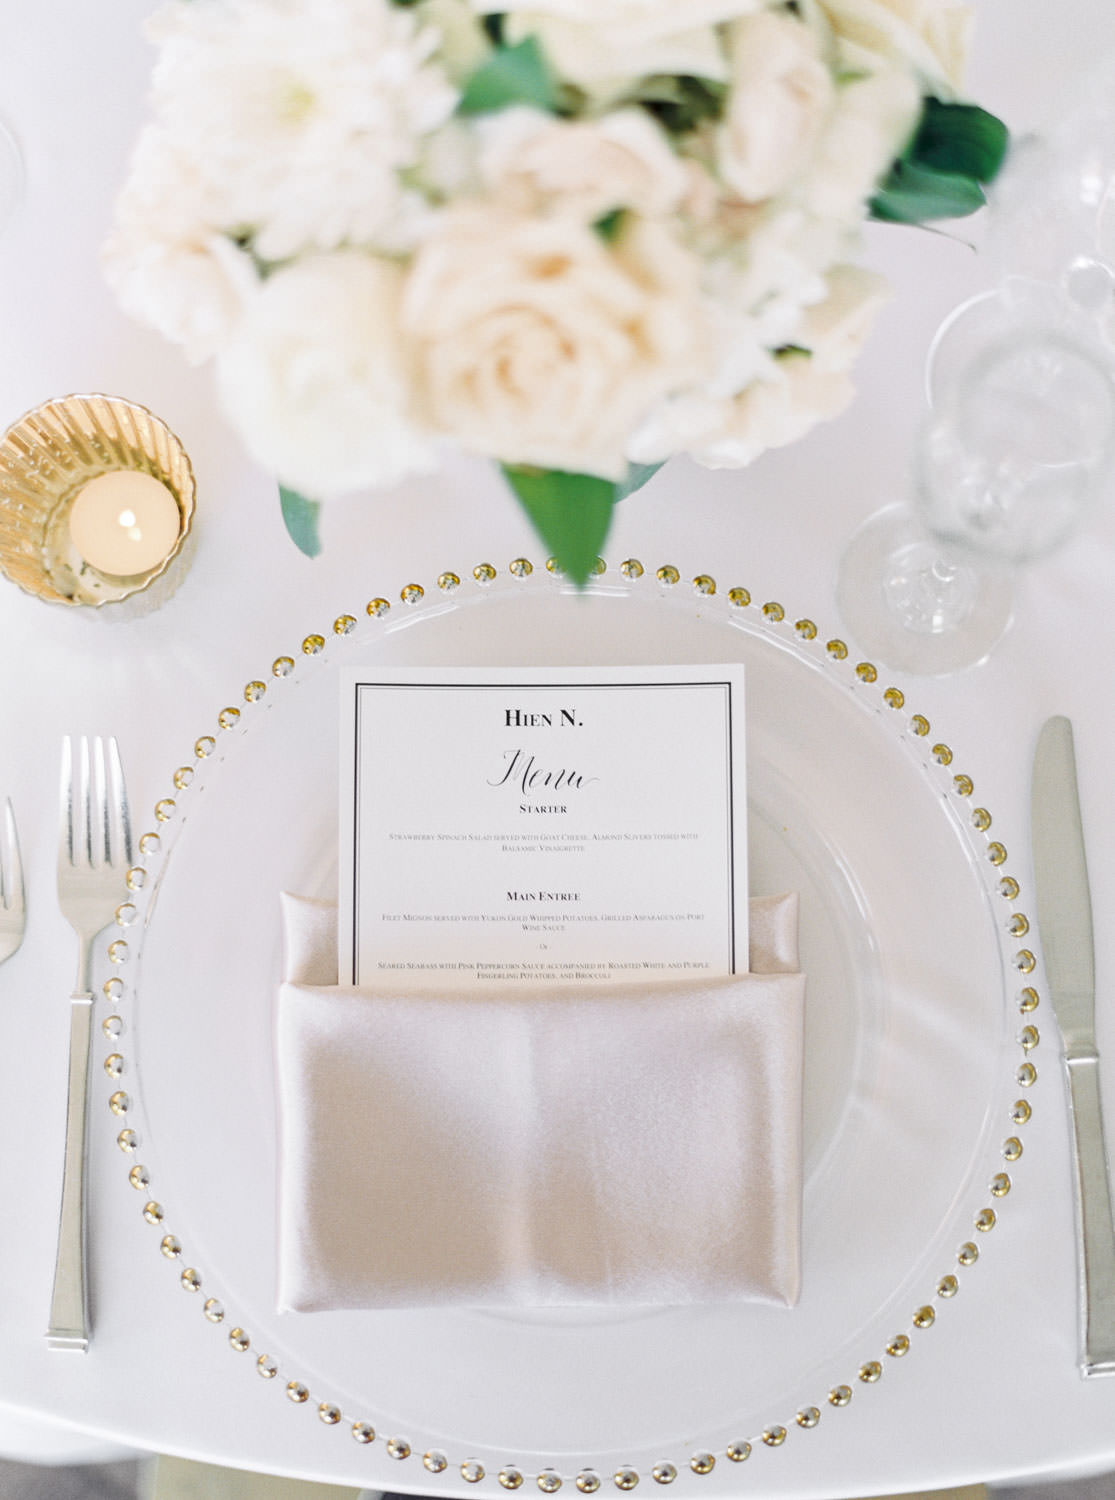 Gold beaded charger with white and black menu with lavender mauve napkin, wedding reception tall centerpiece with white and green flowers at the Santaluz Club tented reception, Cavin Elizabeth Photography